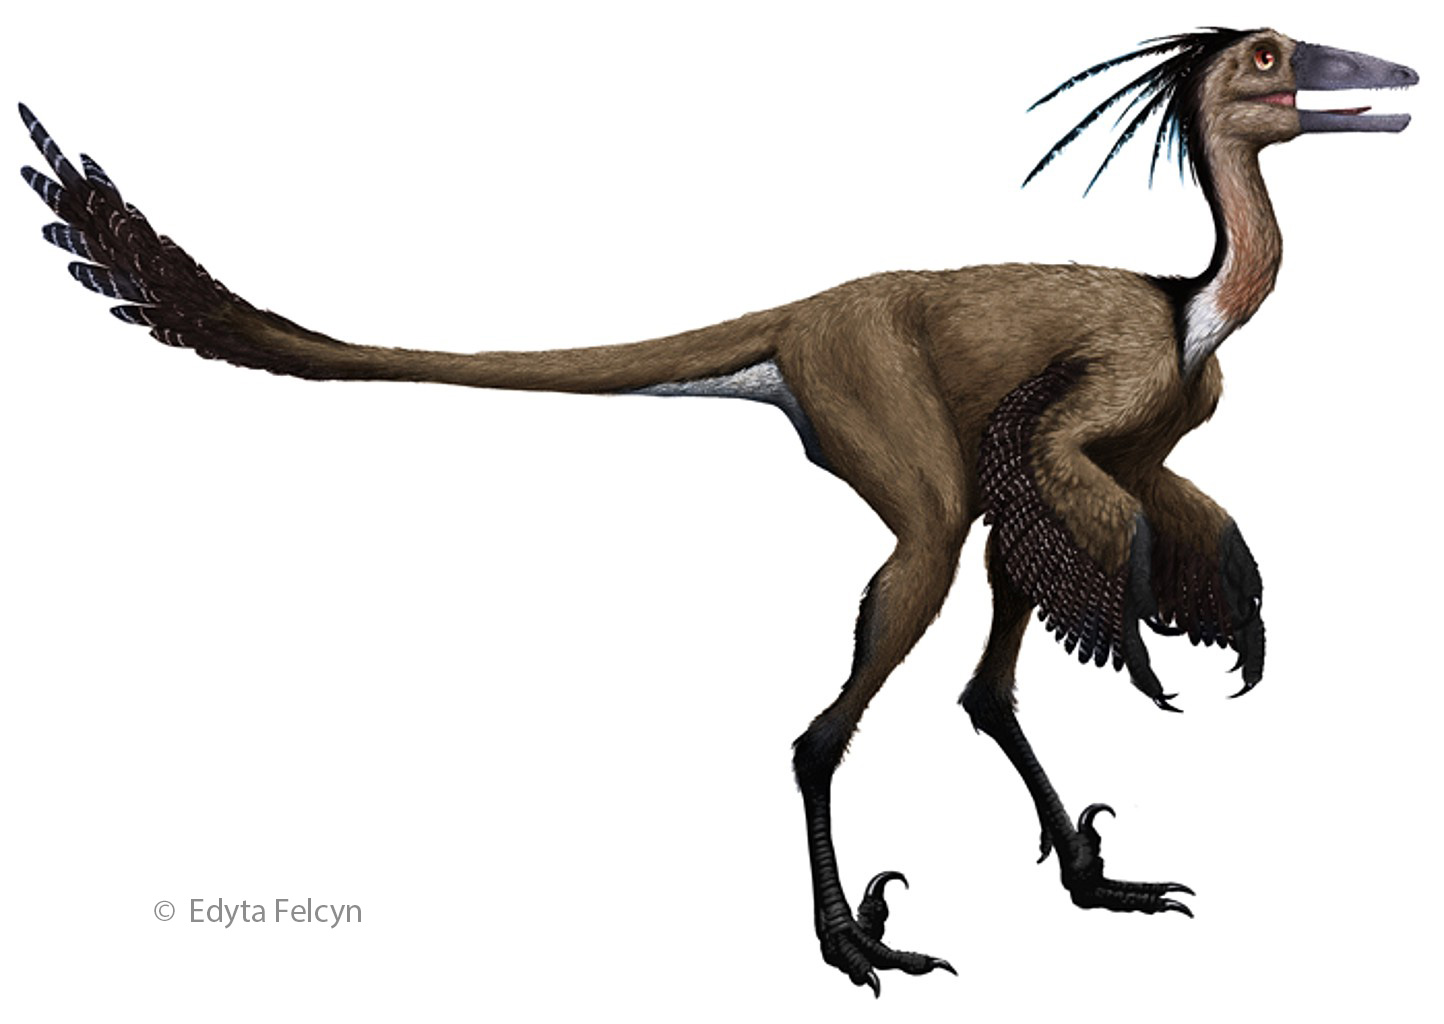 evidence suggest birds ancestors were the dinosaurs Flying reptiles ruled the skies for millions of years pterosaurs, however, were not dinosaurs and they are not the ancestors of modern birds.